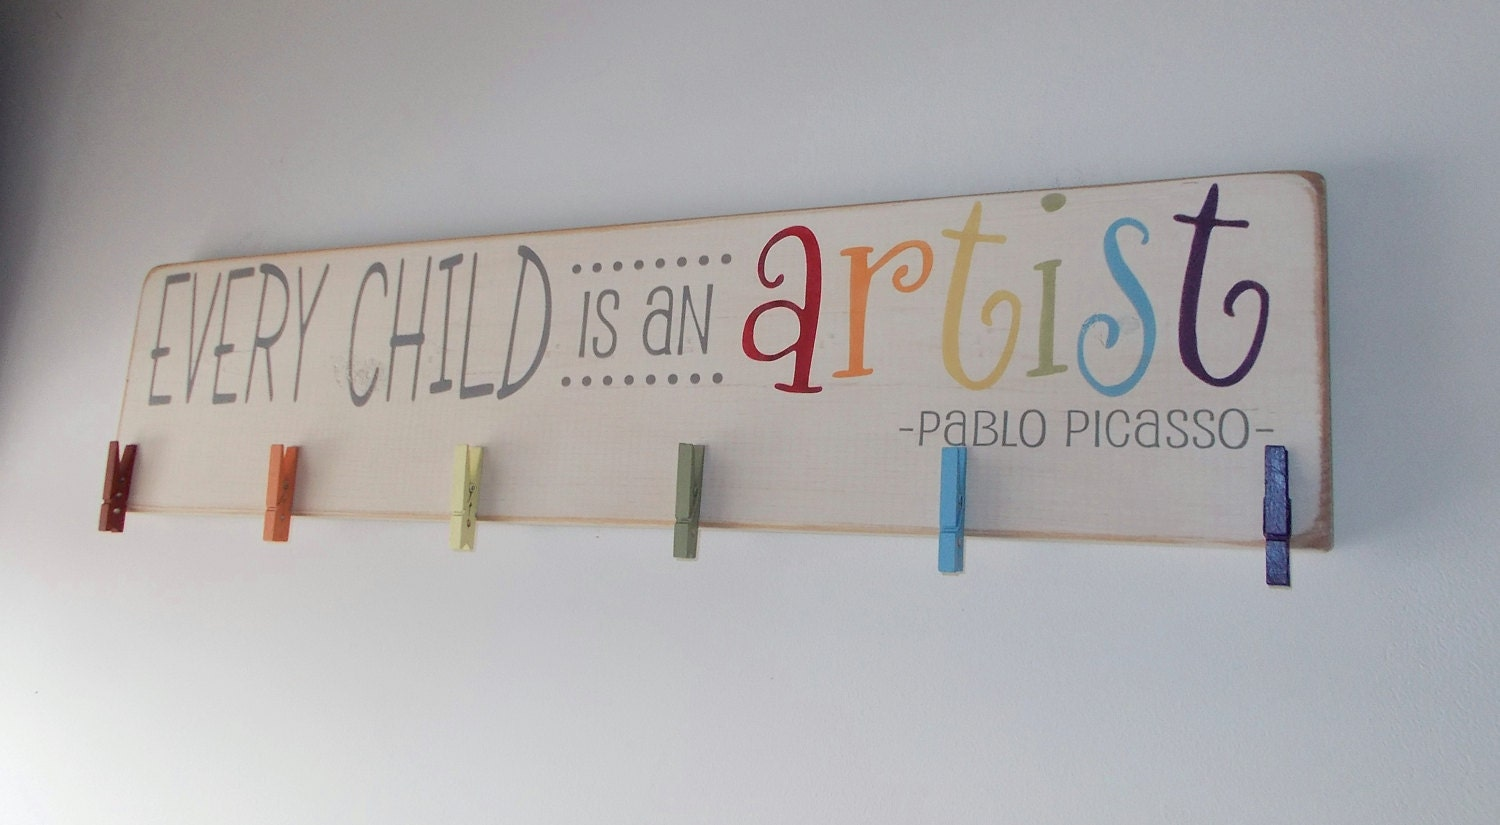 Childrens Artwork Display Every Child Is An Artist Childrens Art Display Board Wood